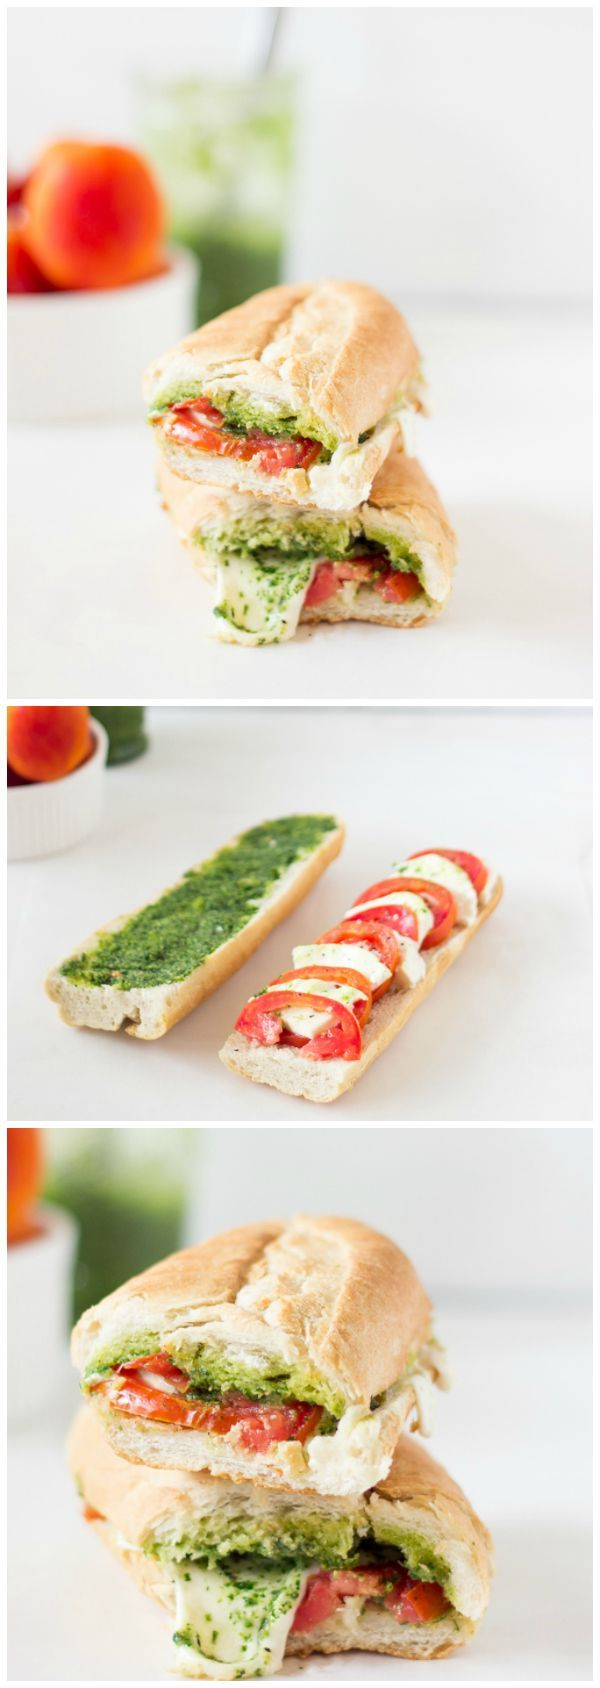 This Caprese Sandwich takes a twist by being toasted with melted mozzarella, and creamy parsley pesto. The sandwich is perfect for an everyday lunch or a picnic and looks amazing.